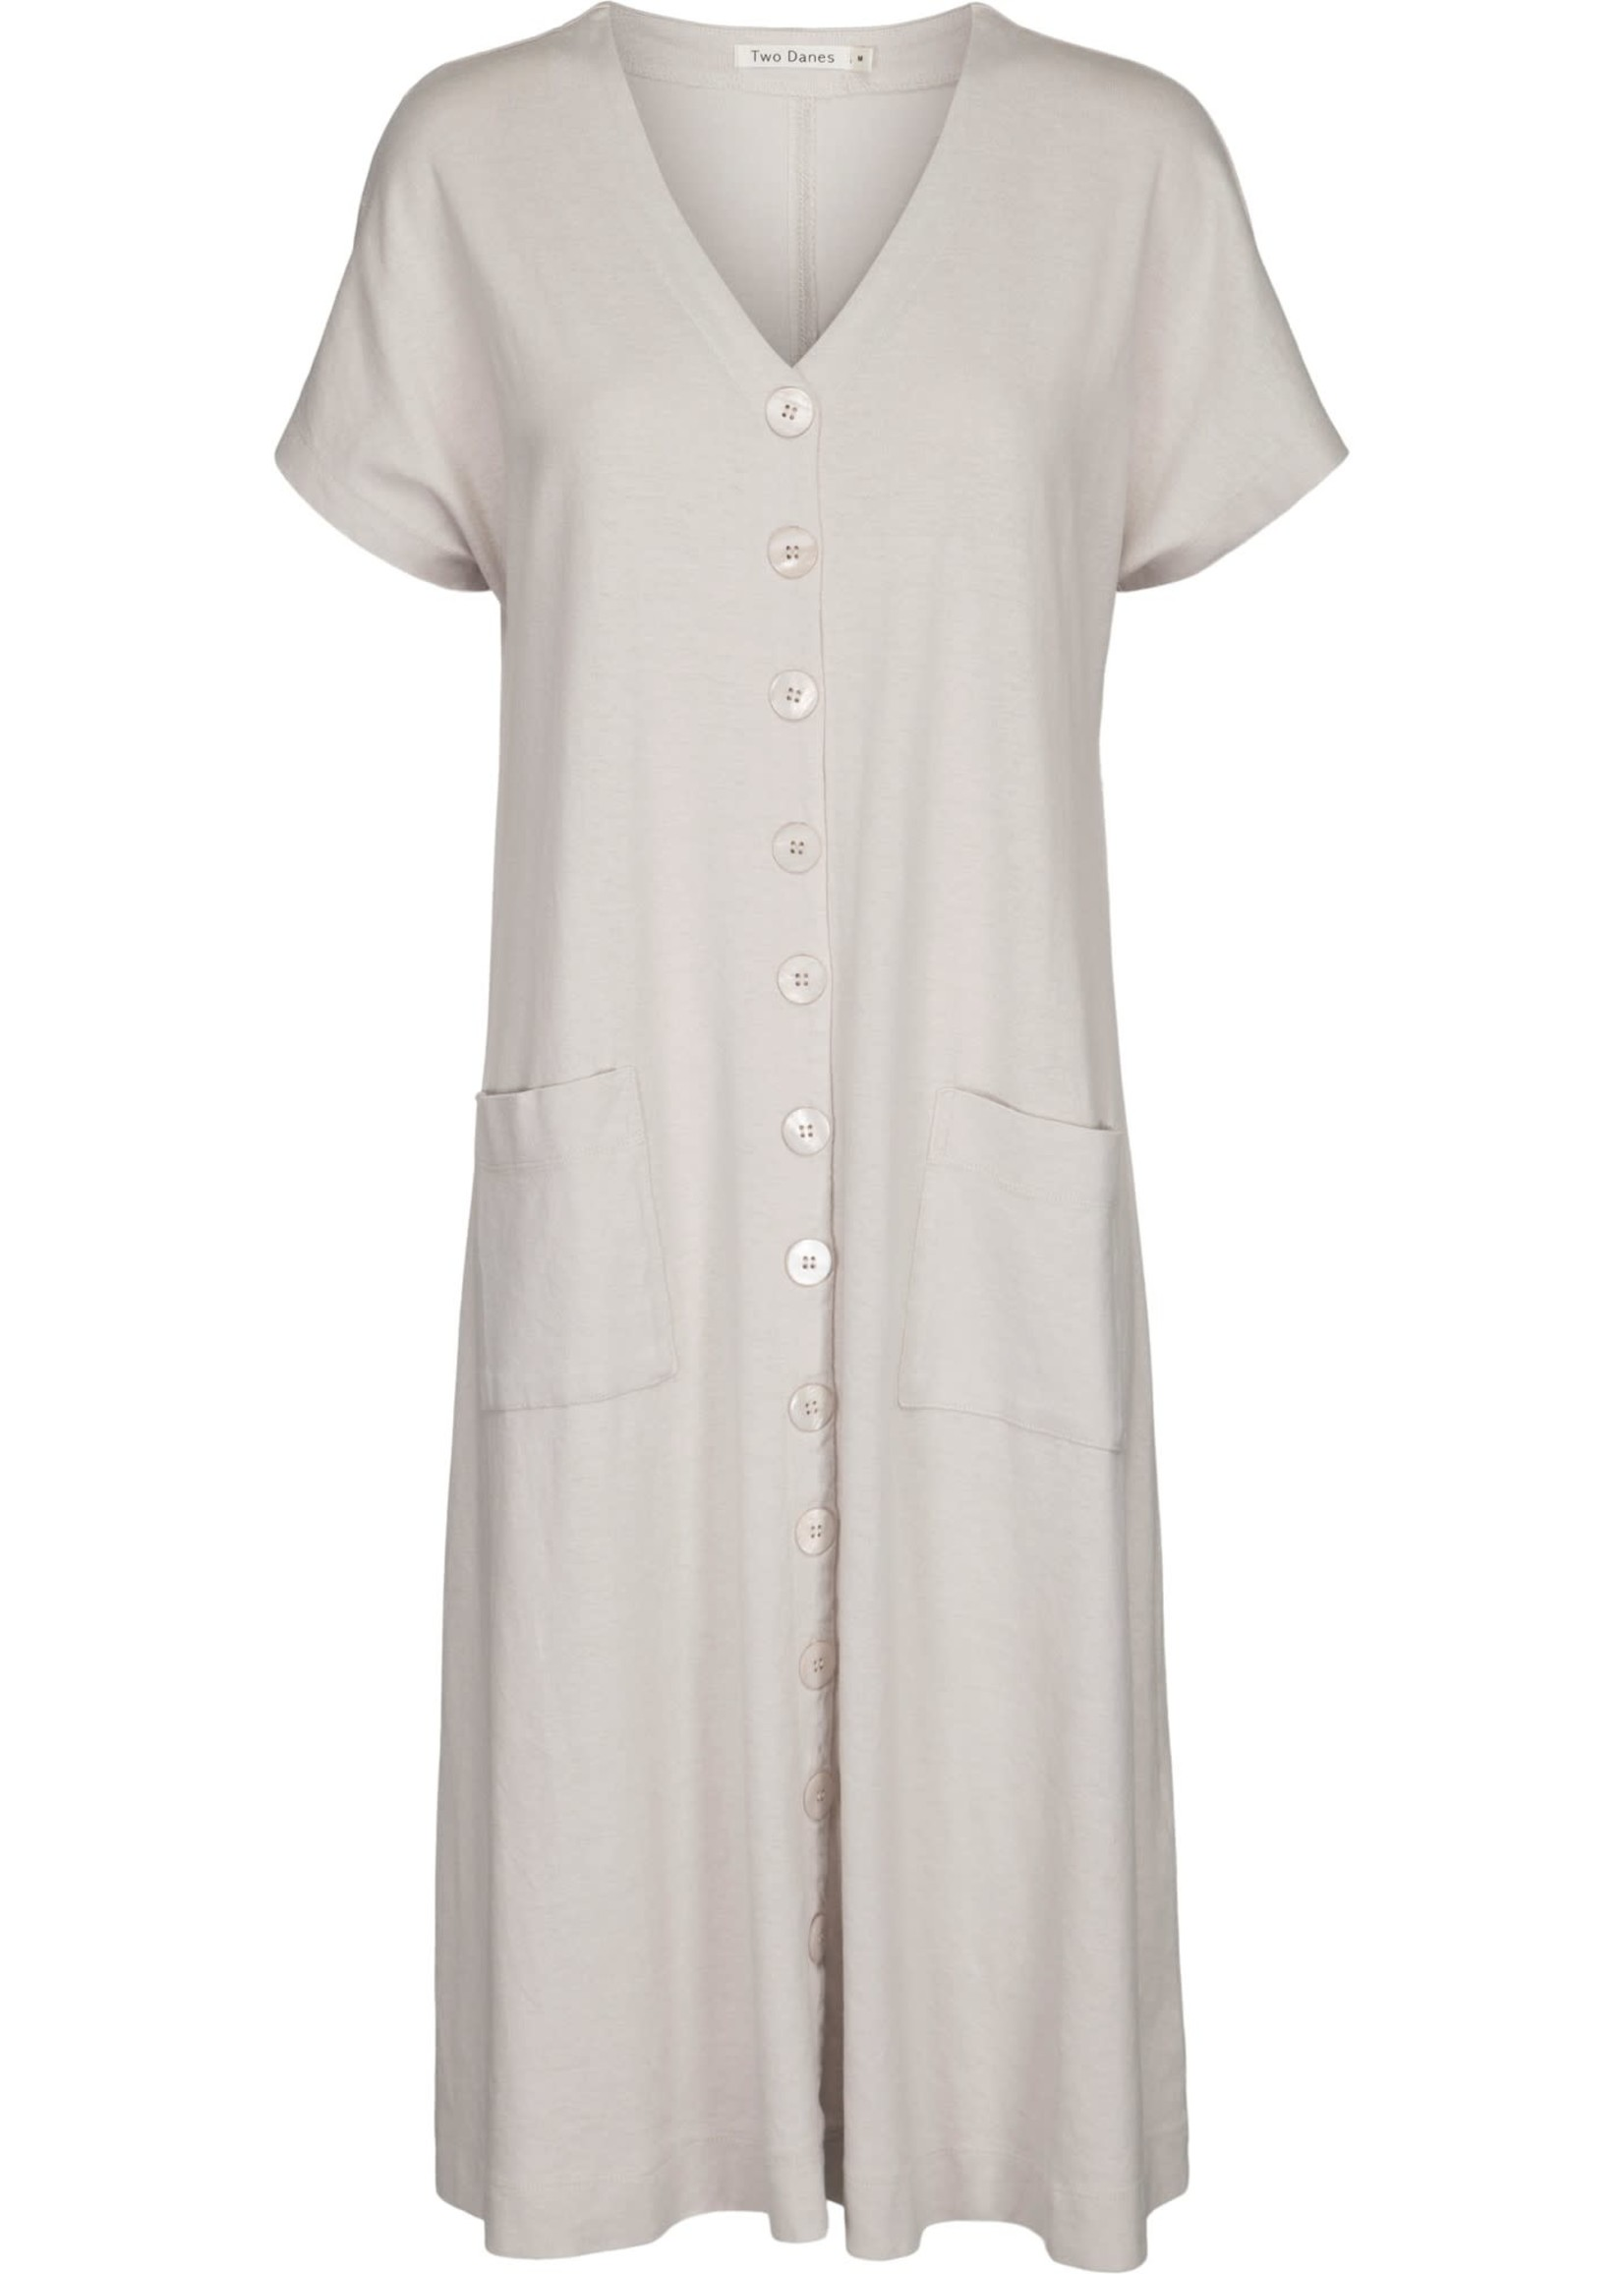 TWO DANES 33021 391 Henny solid Jersey Dress